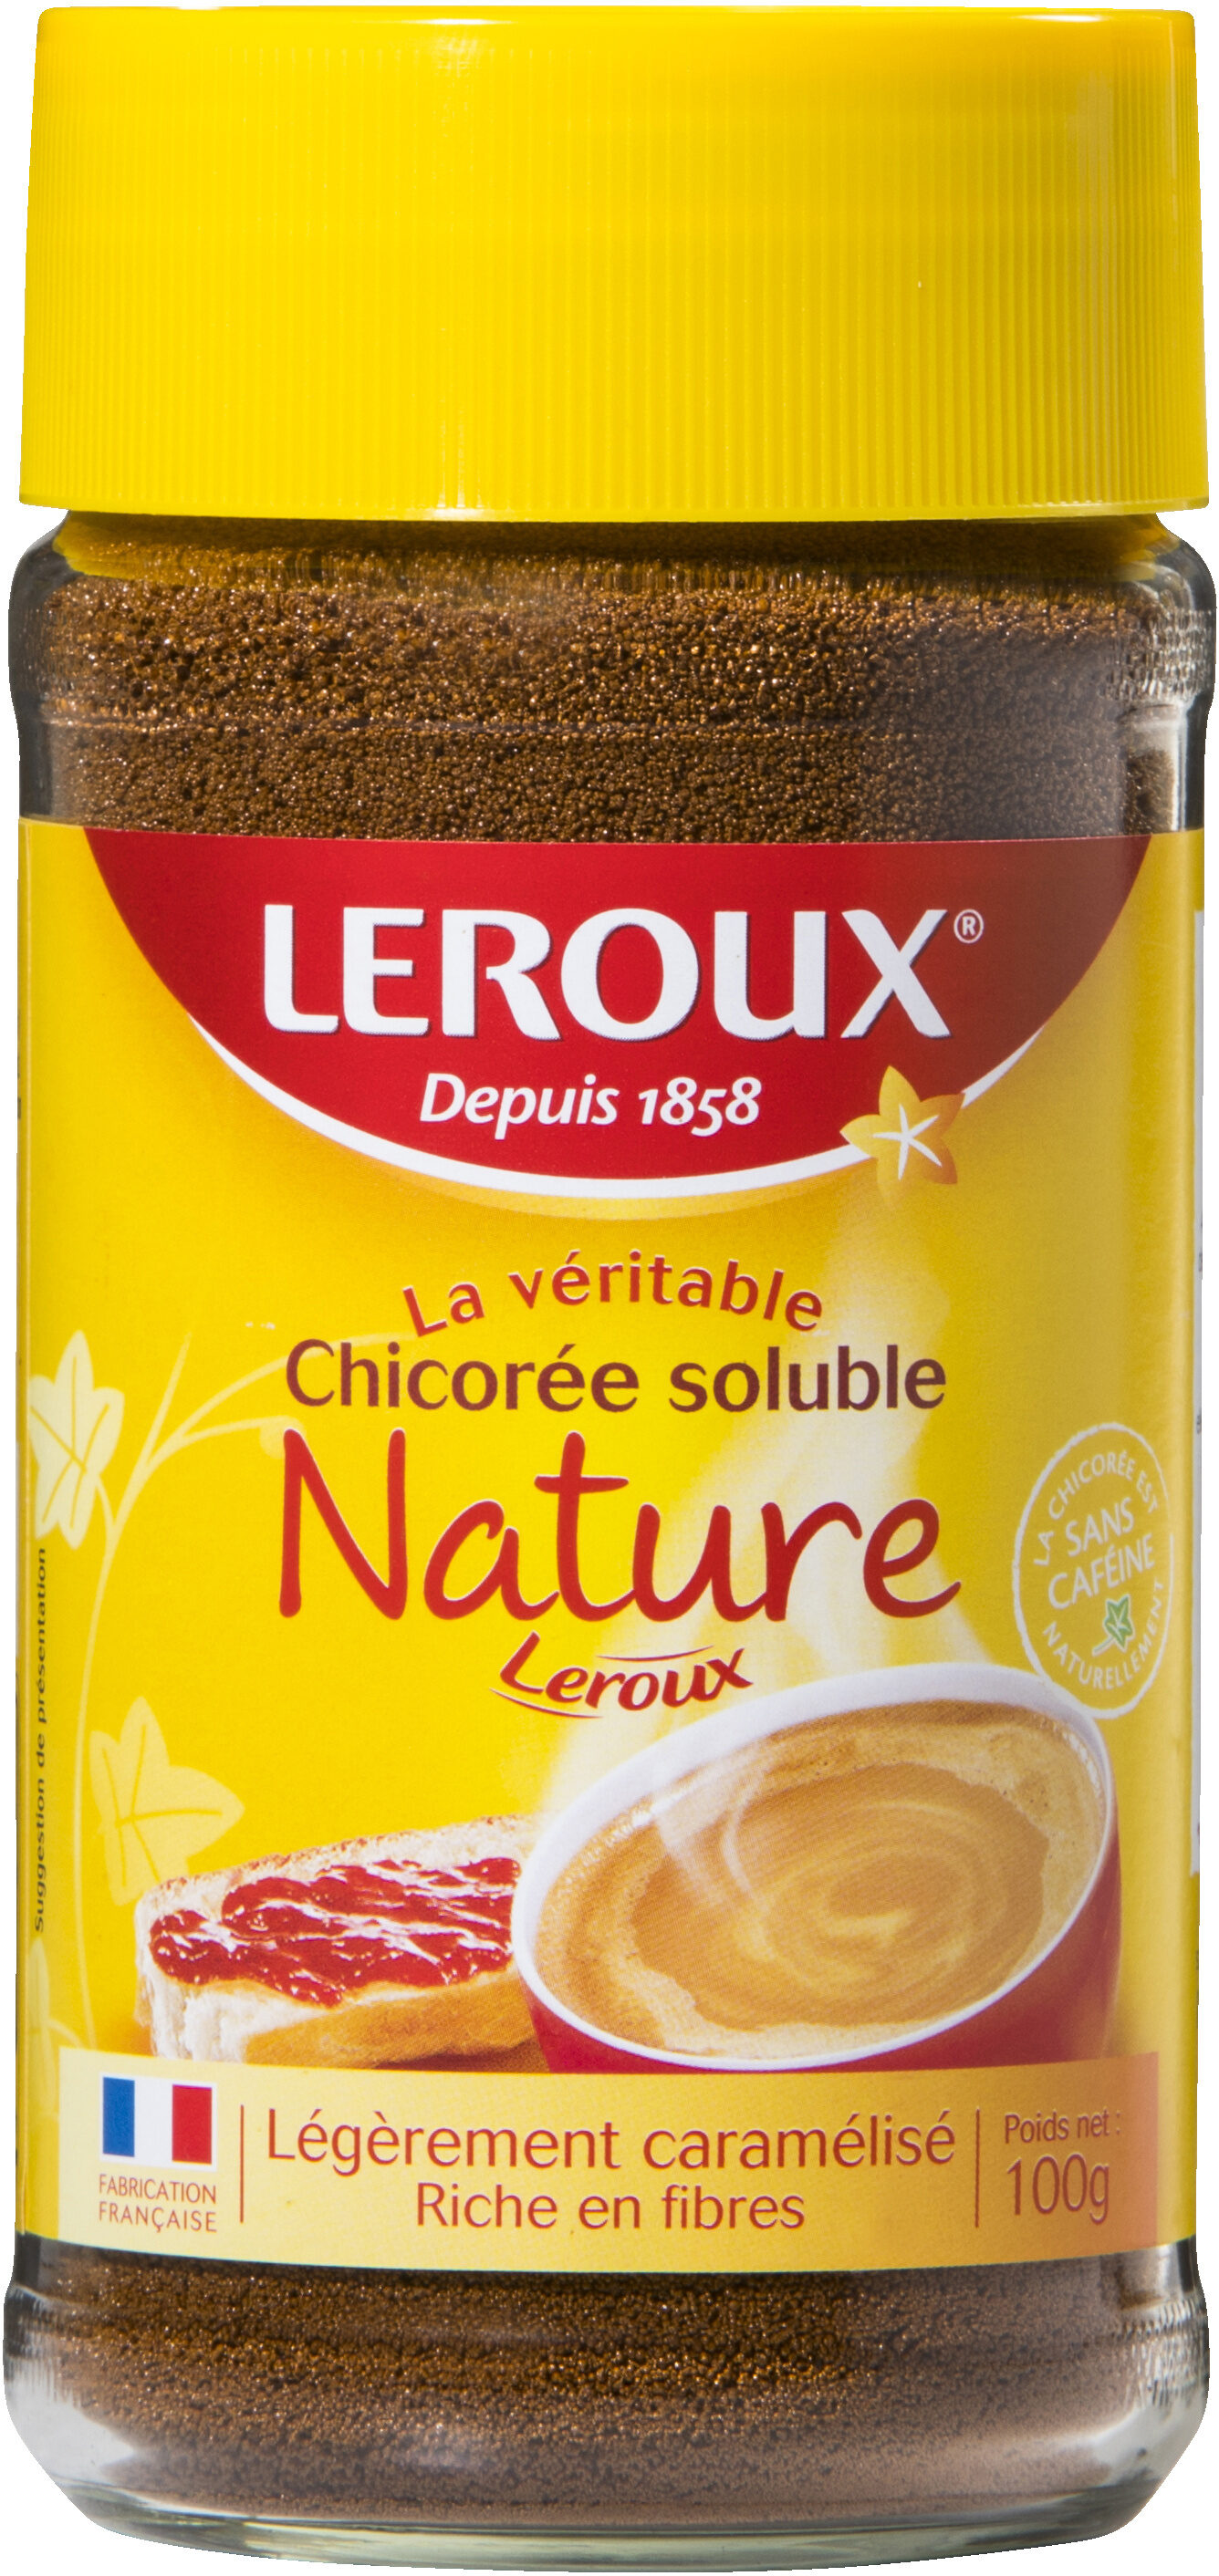 Chicoree soluble nature 100g - Product